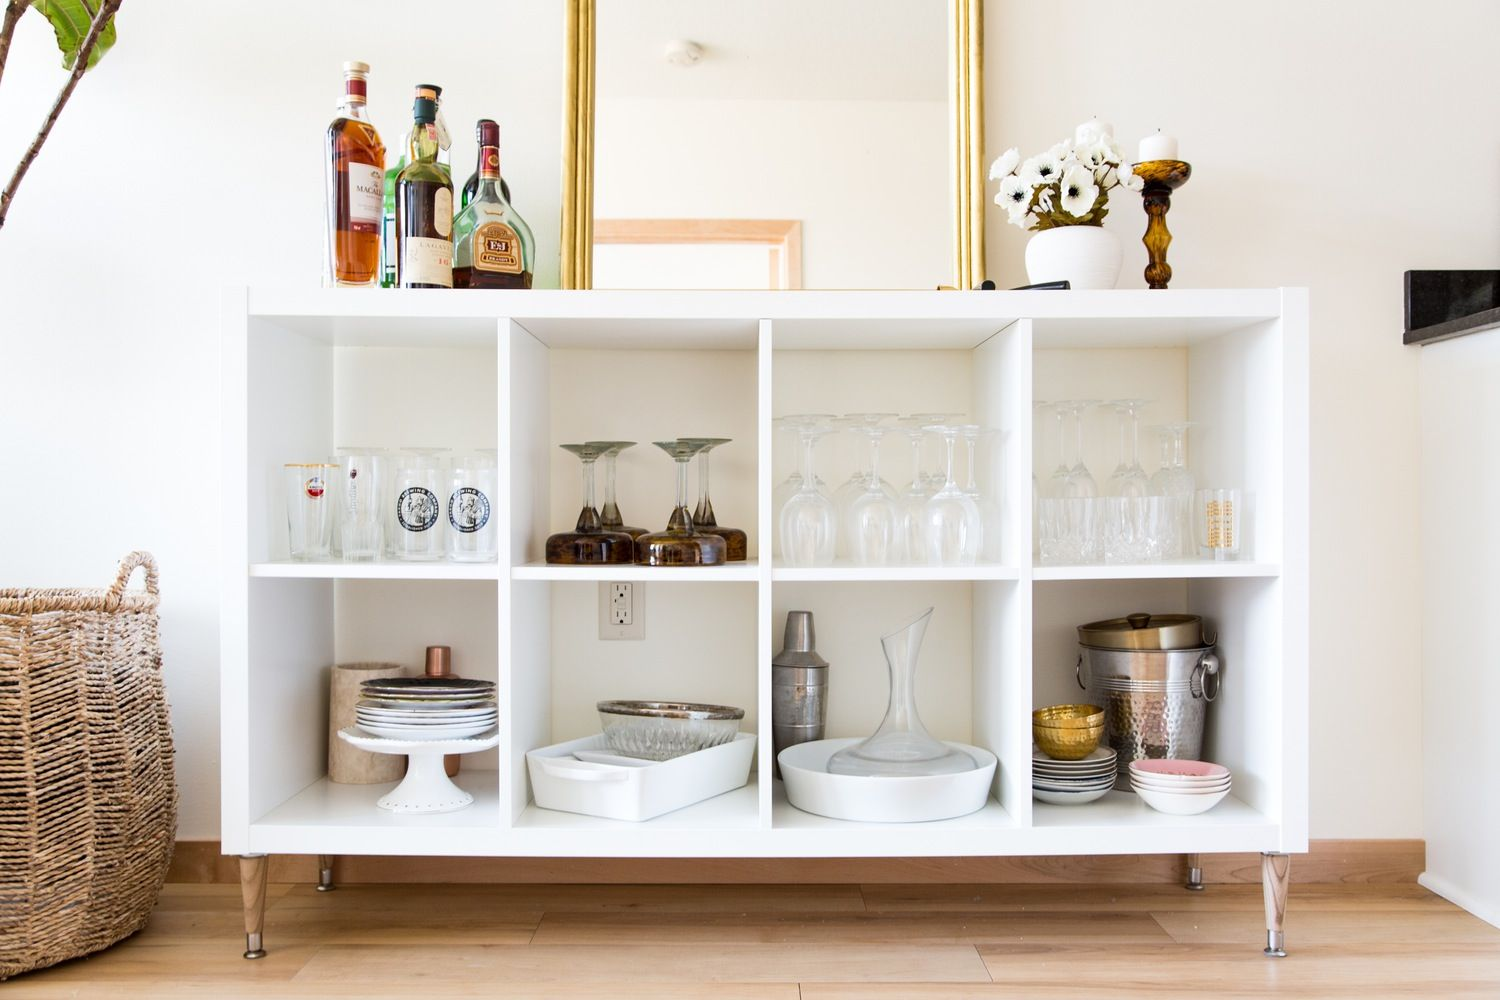 Real Life Advice: How to Make Downsizing Your Stuff a Little Less Painful